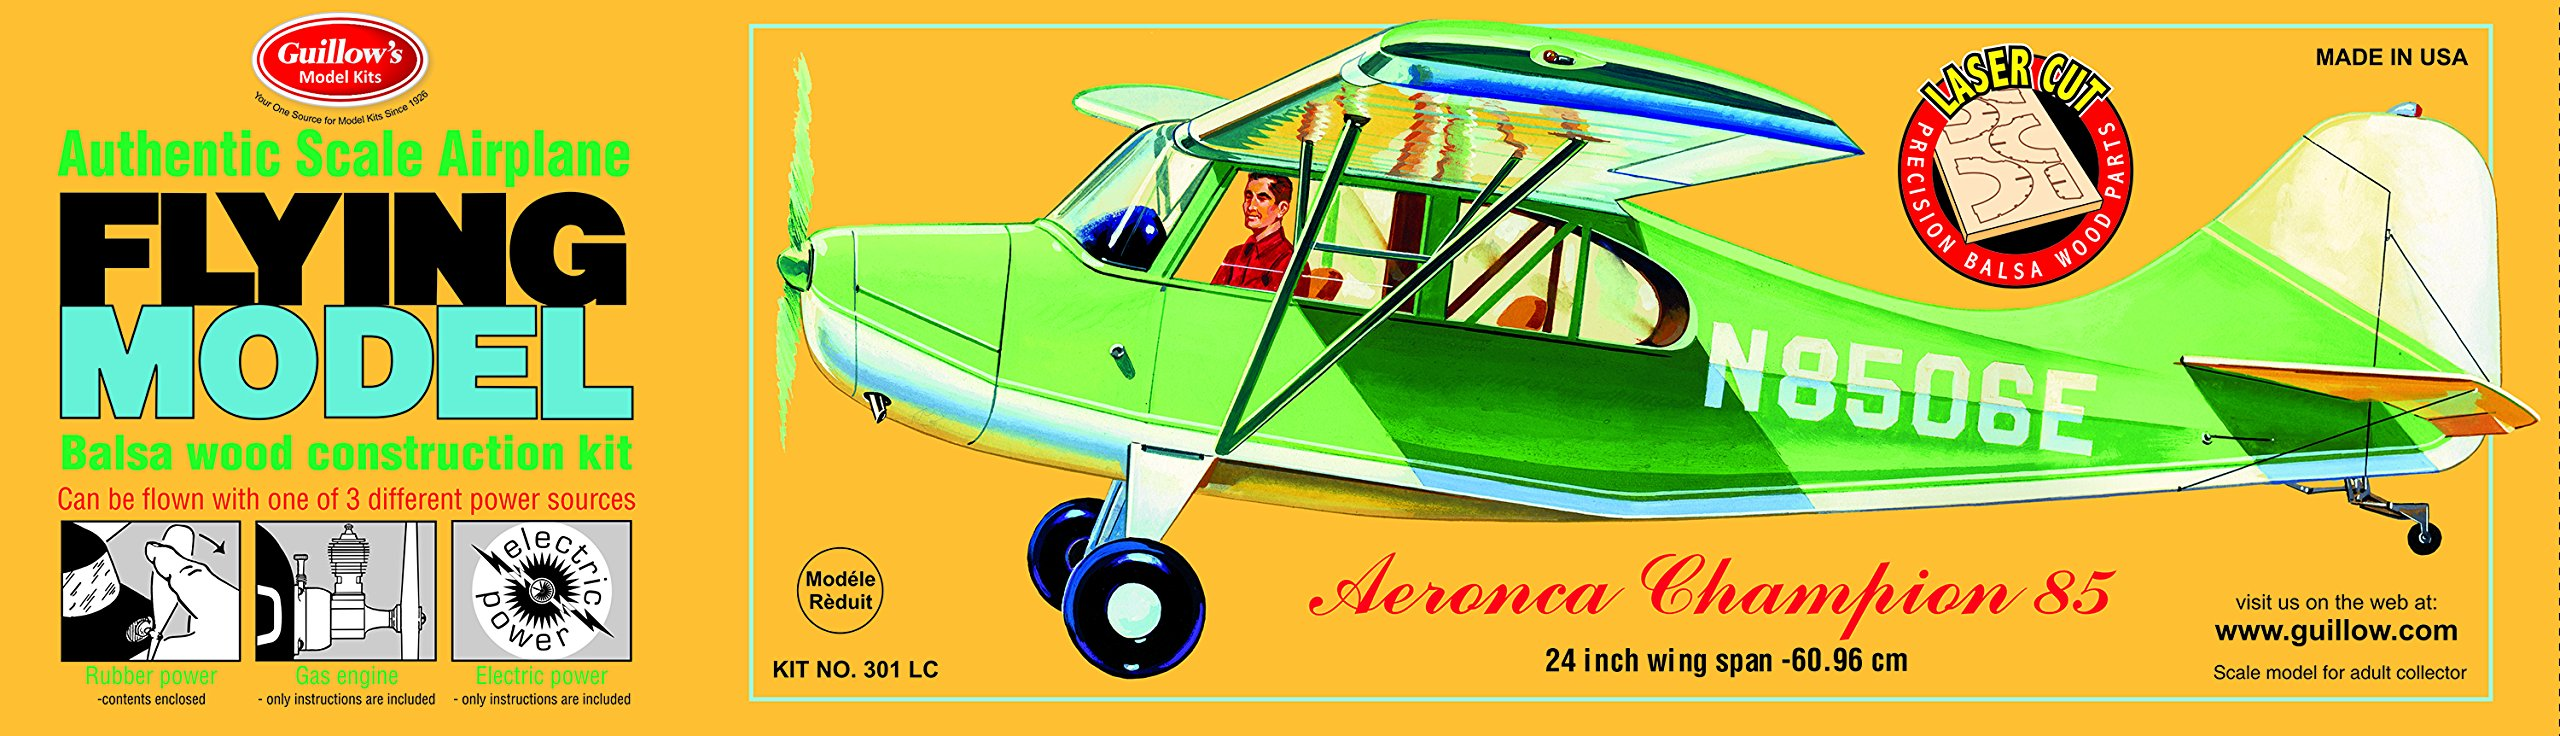 Guillow's Aeronca Champion Balsa Model Airplane Model Kit